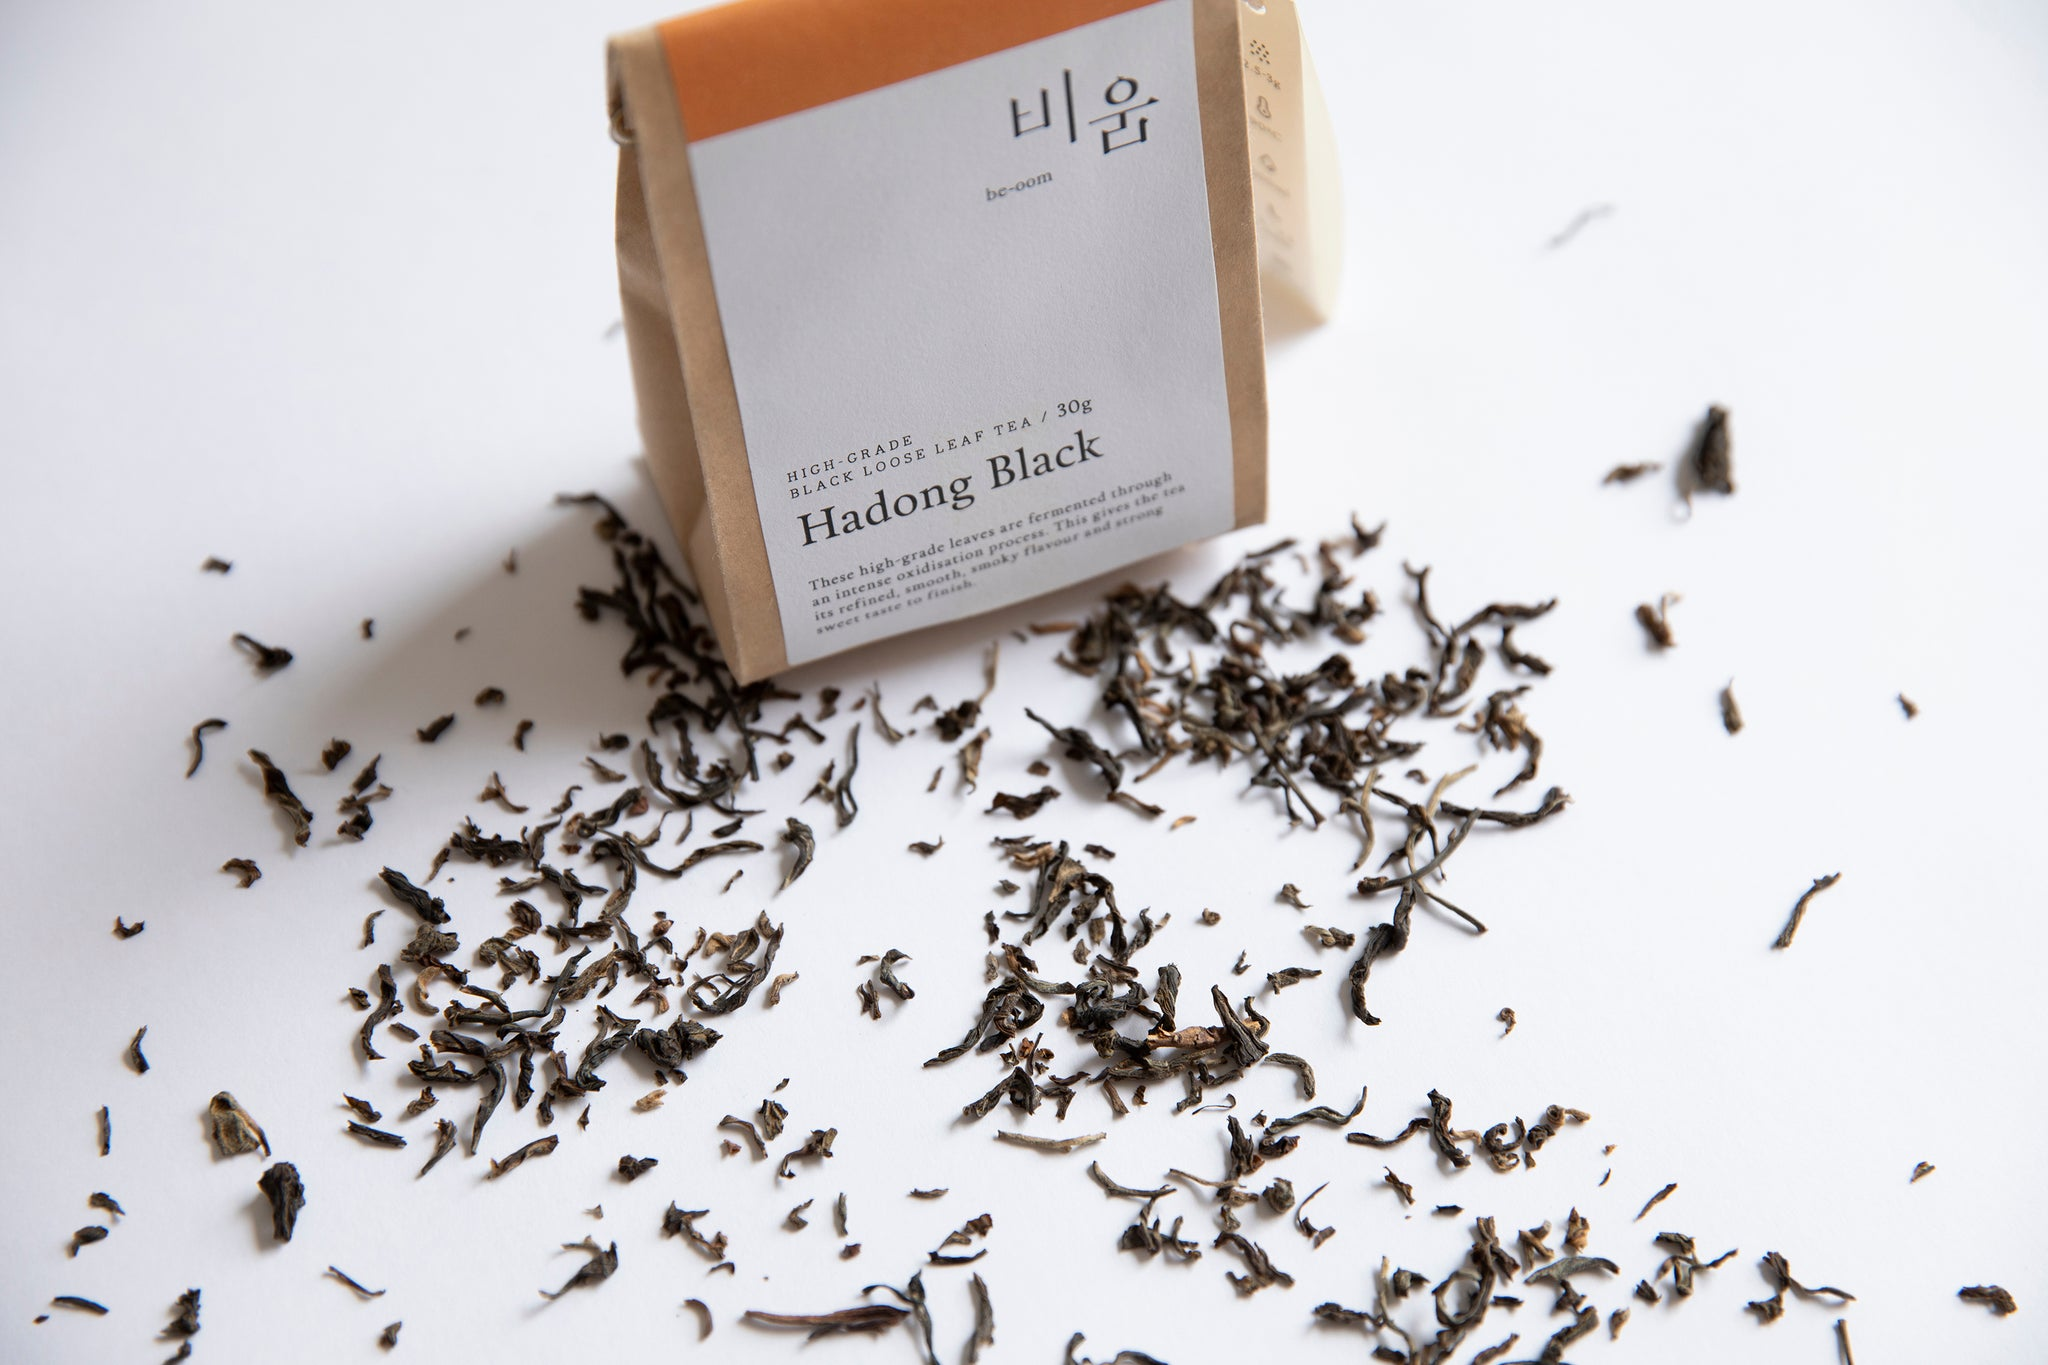 How to Brew: Hadong Black